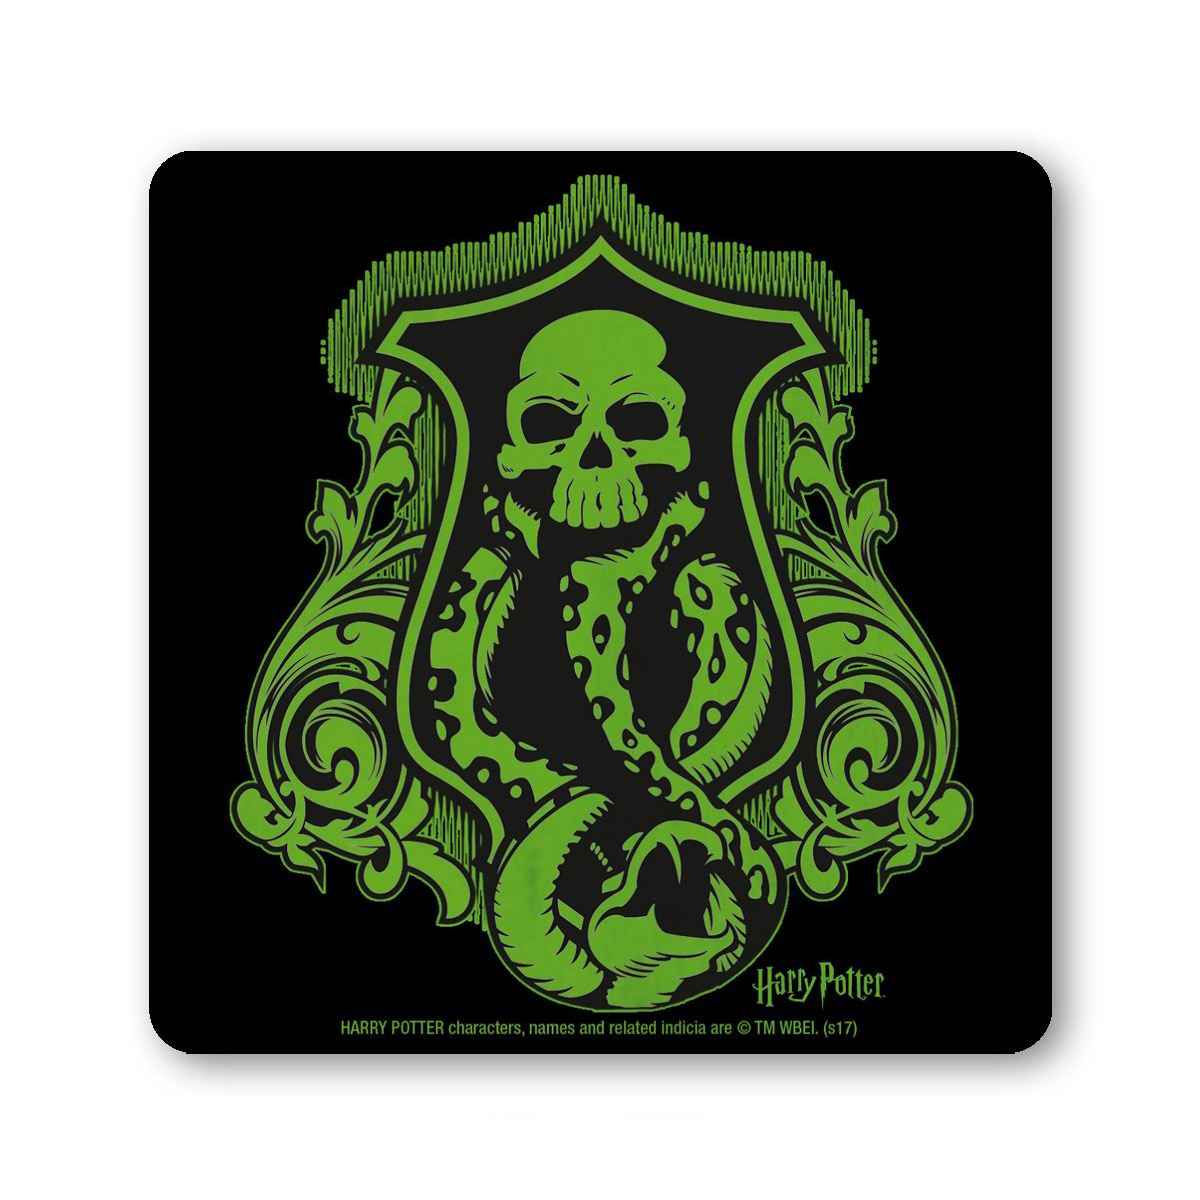 Harry potter death eater sign coaster mat skull snake voldemort harry potter death eater sign coaster mat skull snake voldemort malfoy bellatrix biocorpaavc Images